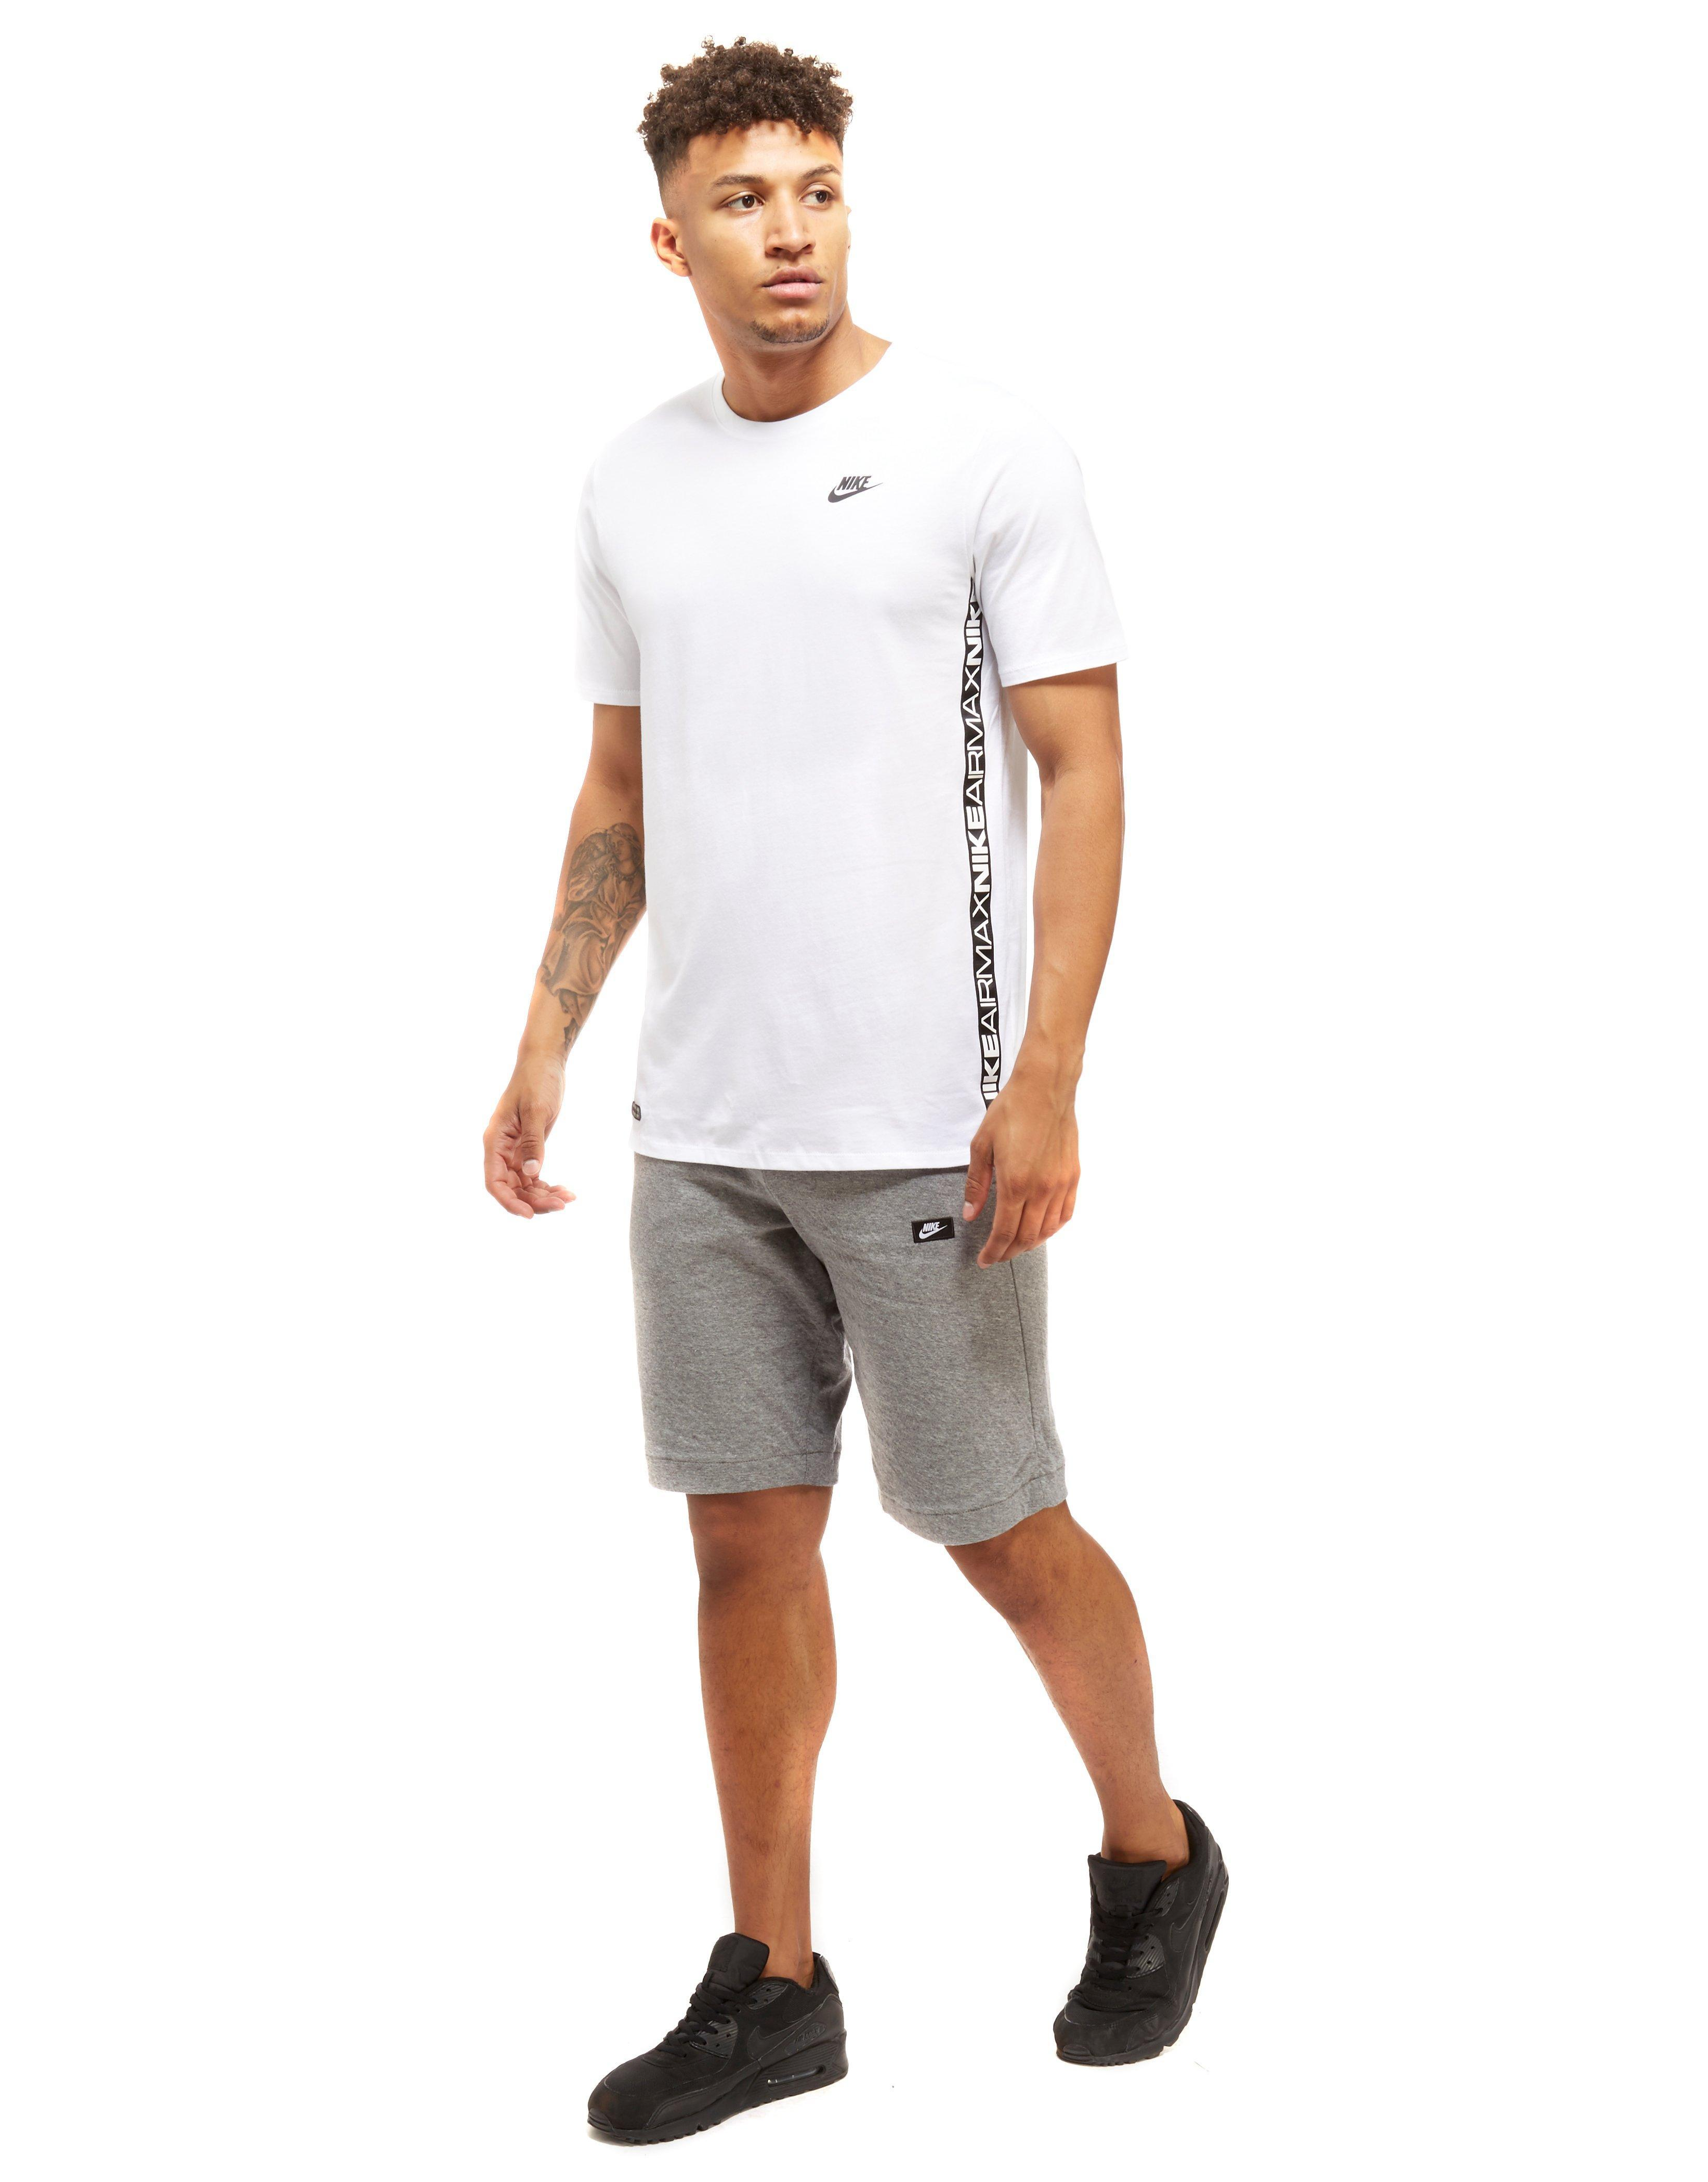 Nike Cotton Air Max Tape T shirt in White for Men Lyst